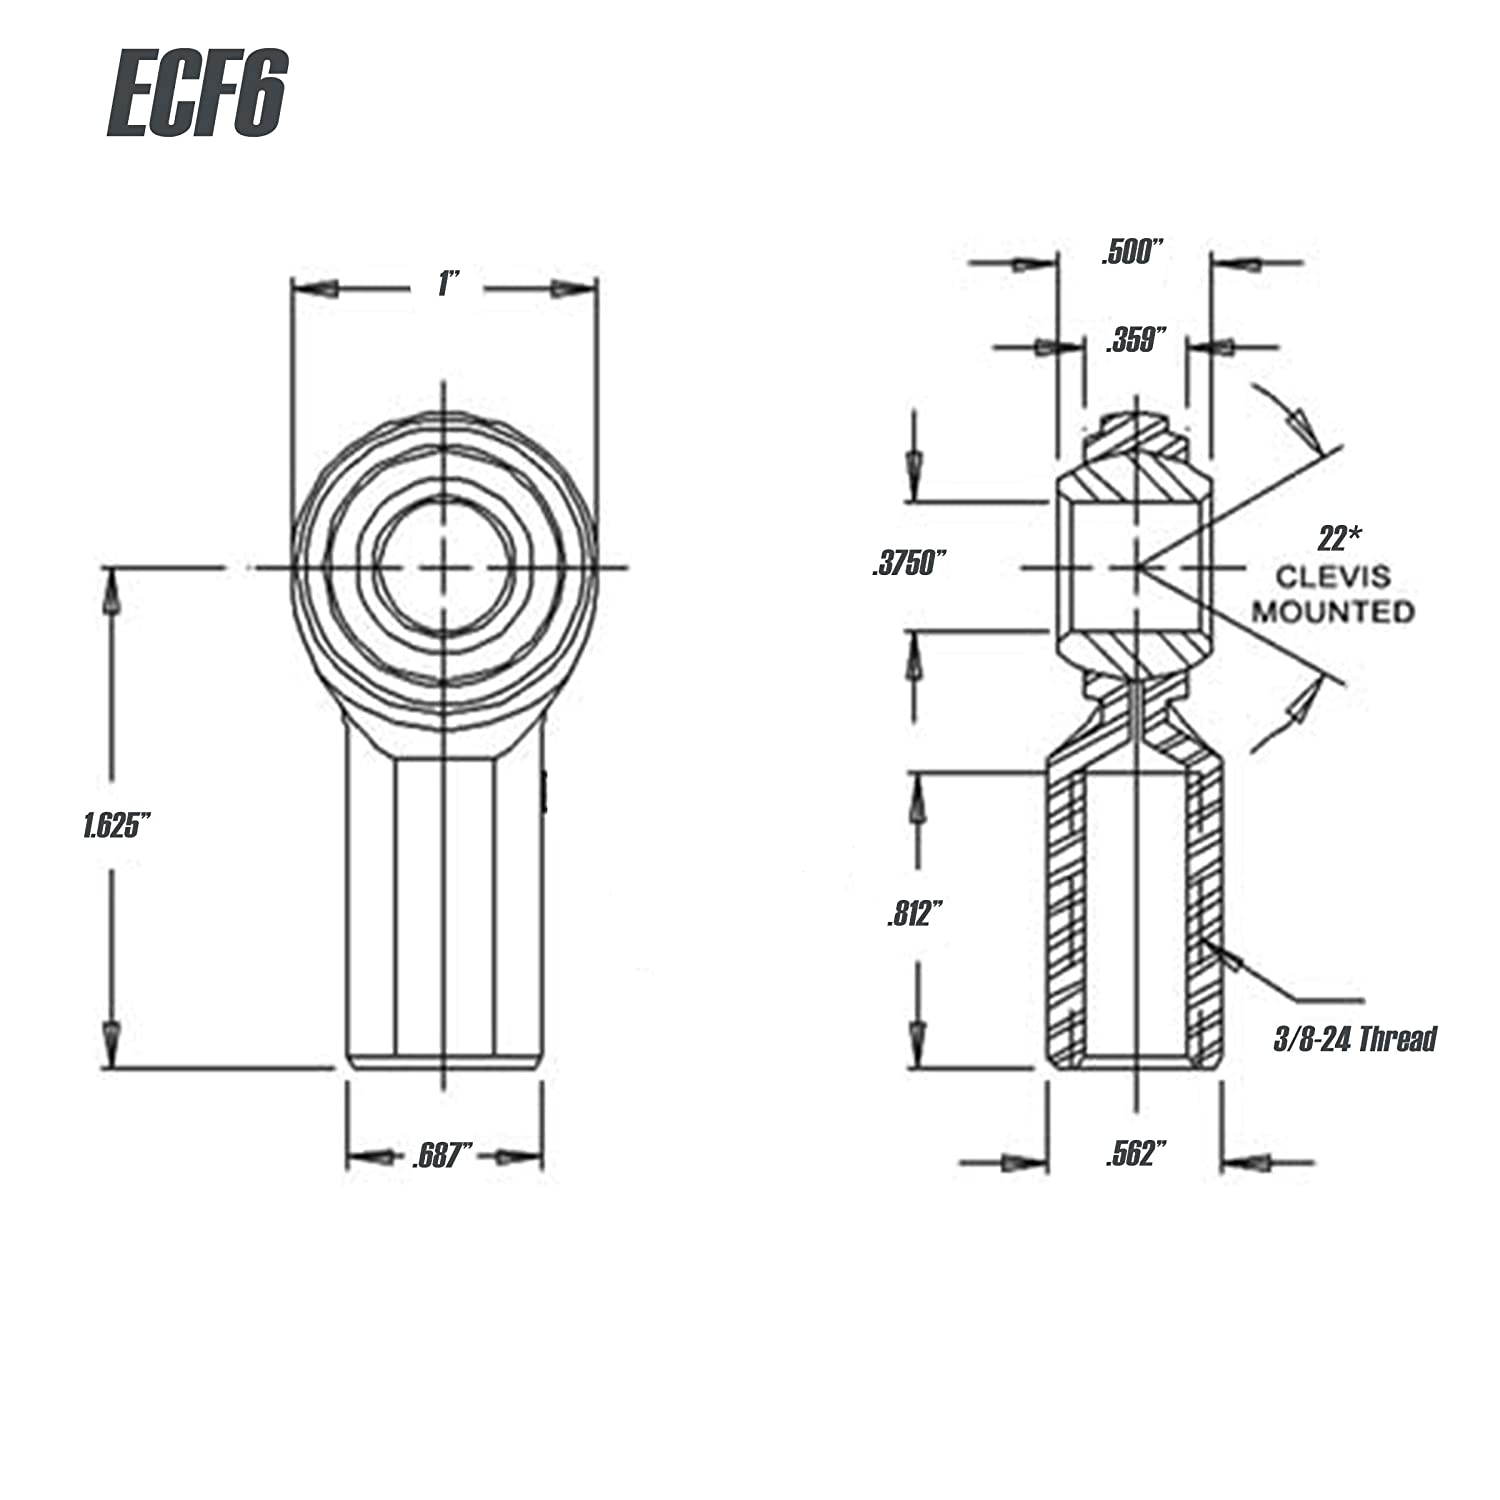 Rod End 3//8 x 3//8-24 ECF6 Female Economy Right Hand Rod End Bearing with Jam Nut Included Heim Joint Rod End Direct